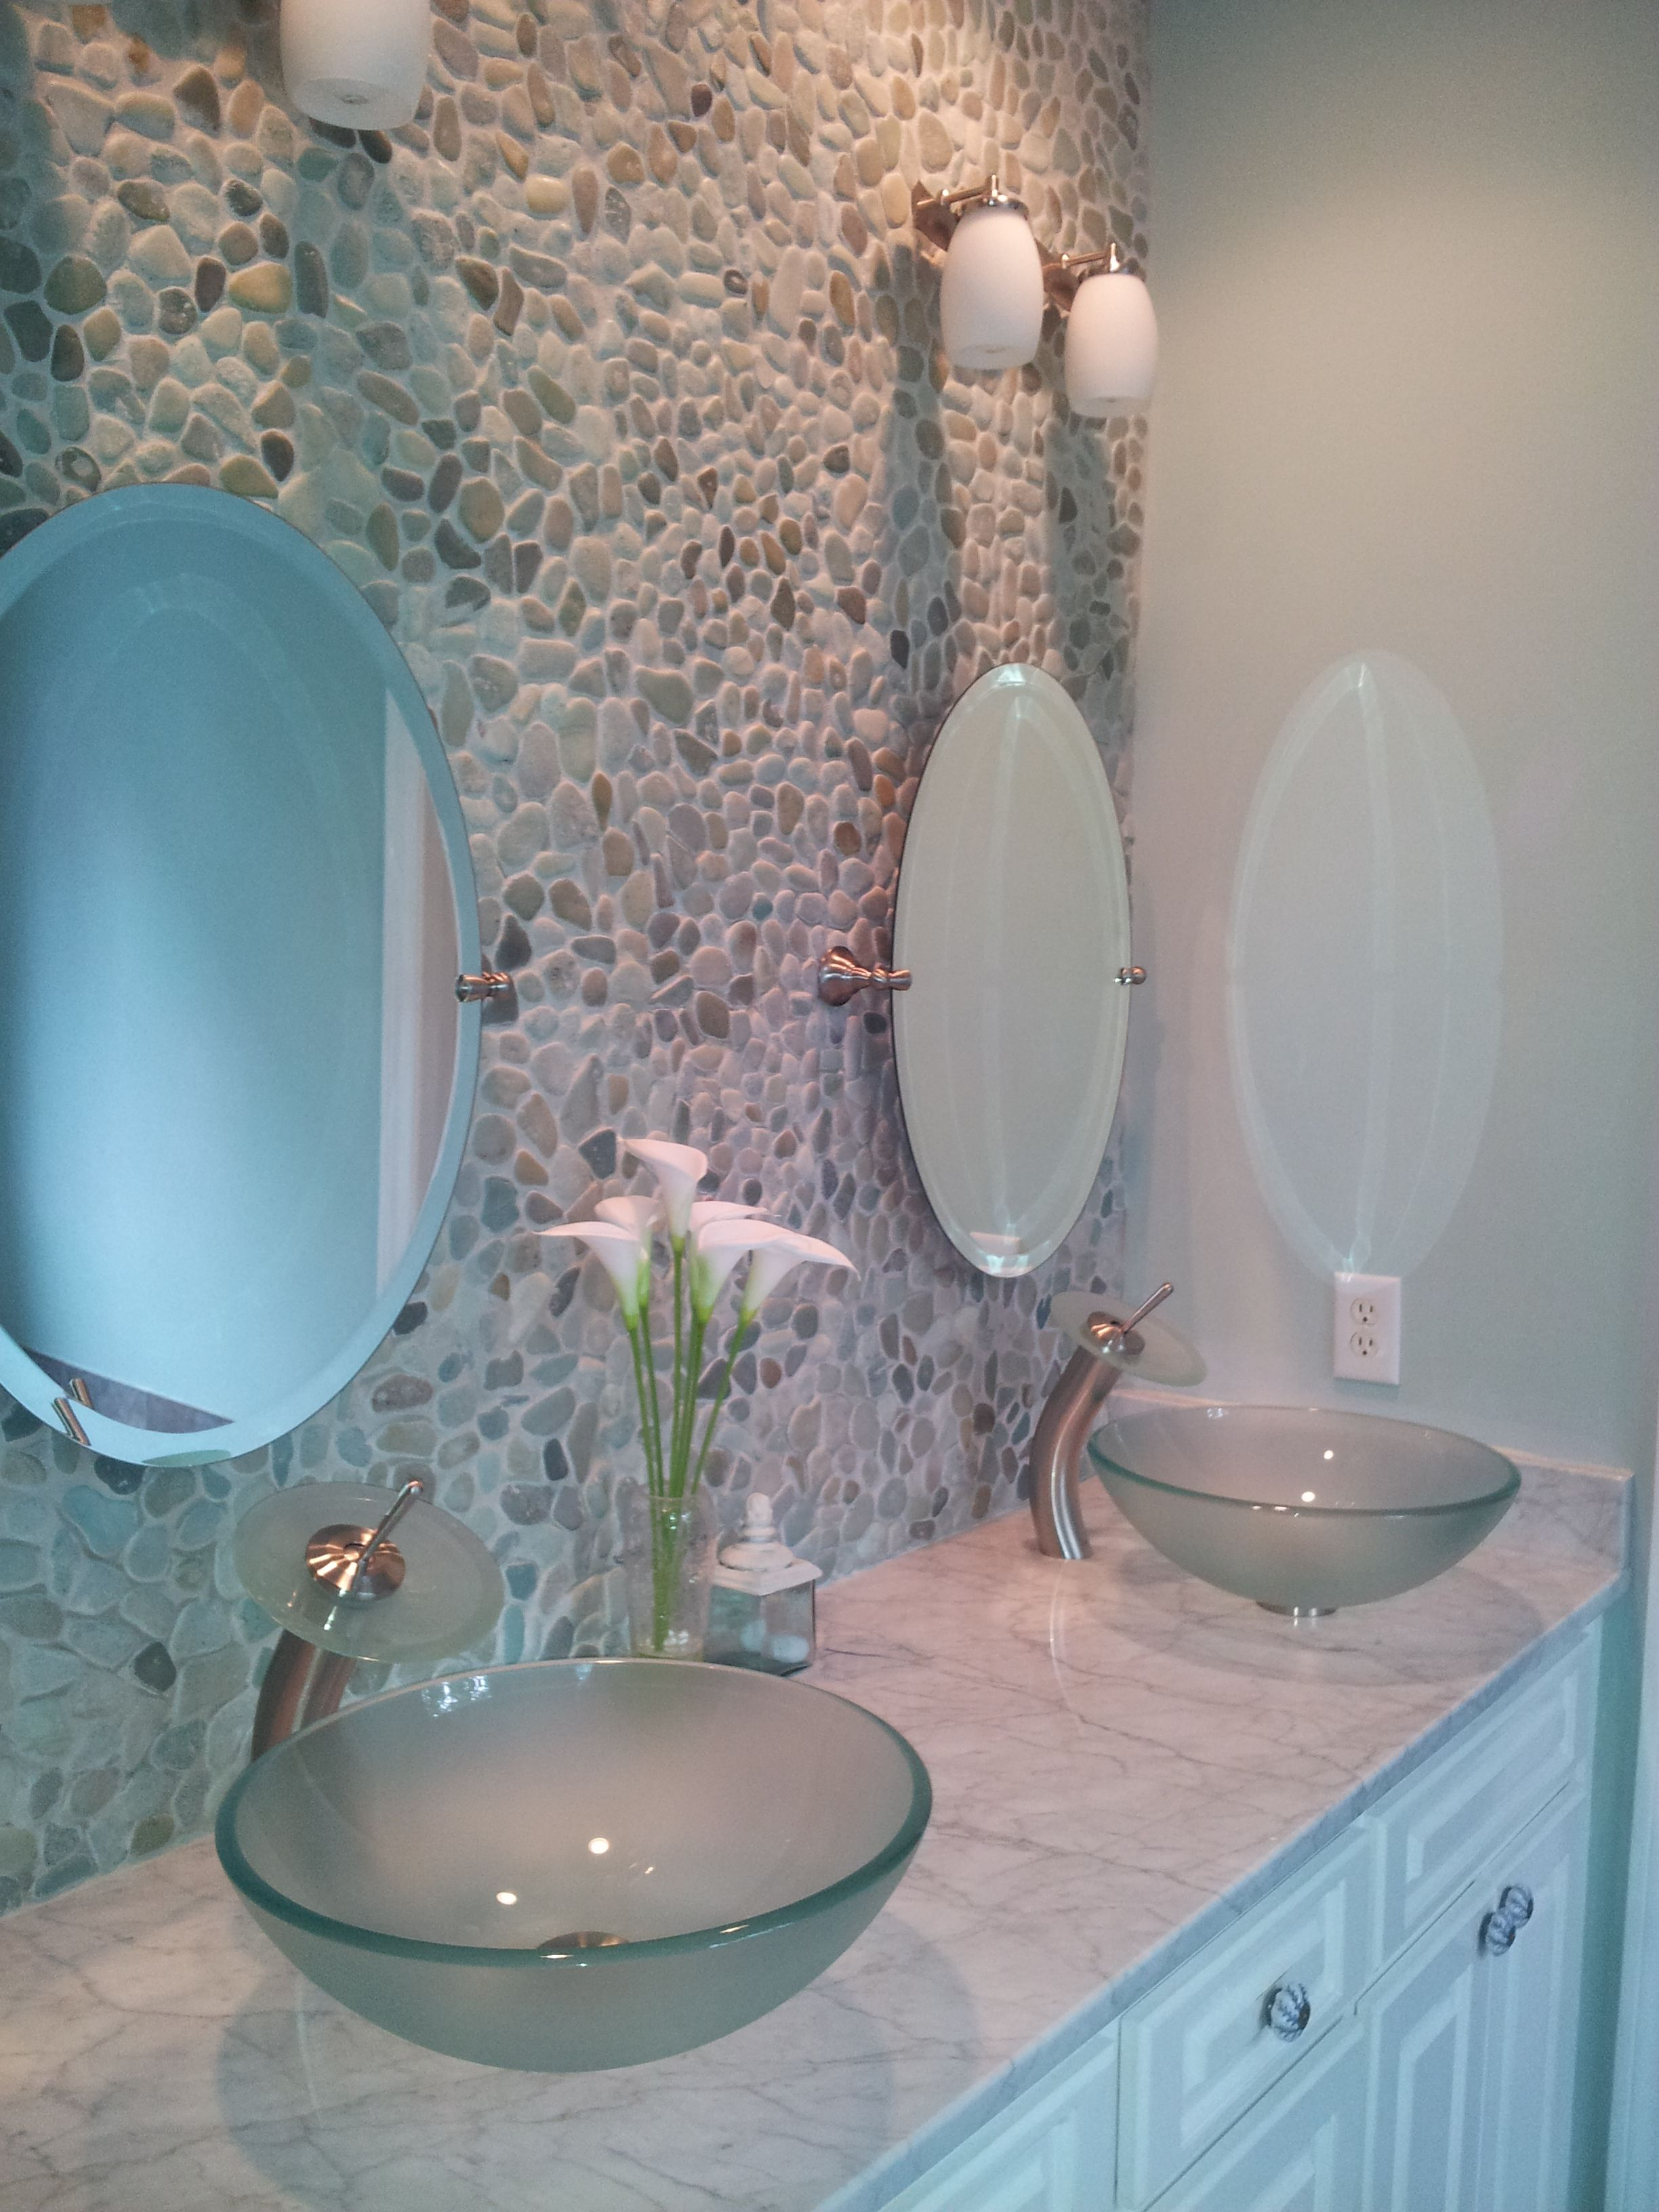 Bathroom Diy Pebblestone Wall Vessel Sinks And Waterfall